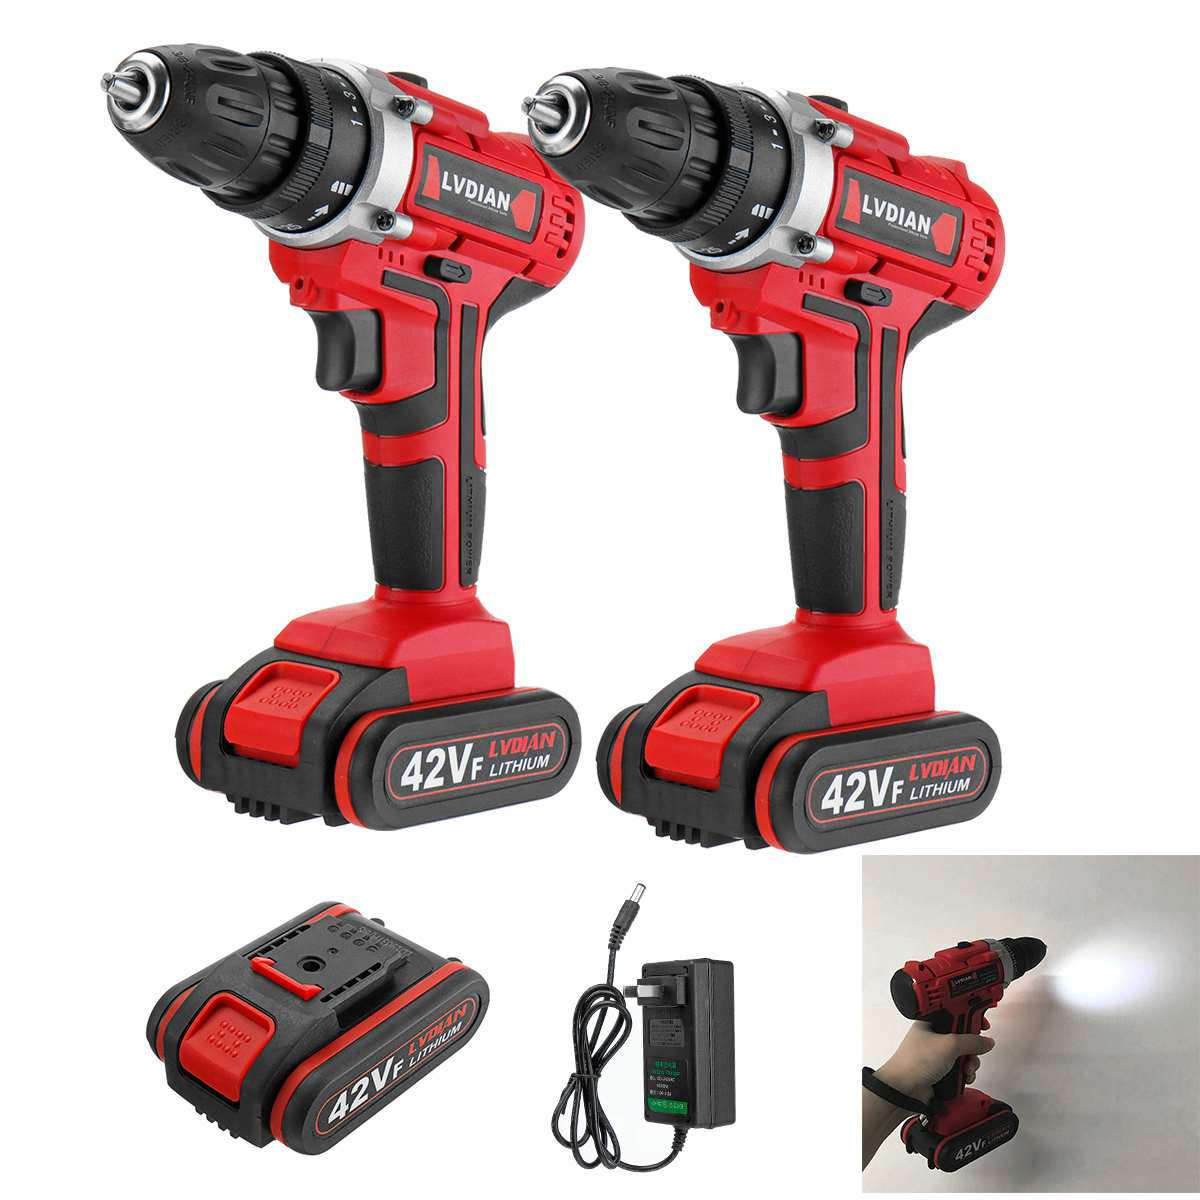 42V Electric Drill Wireless Screwdriver Smart 25+1 Torque Drill 2-Speed DIY Power Tools Waterproof With LED Work Light